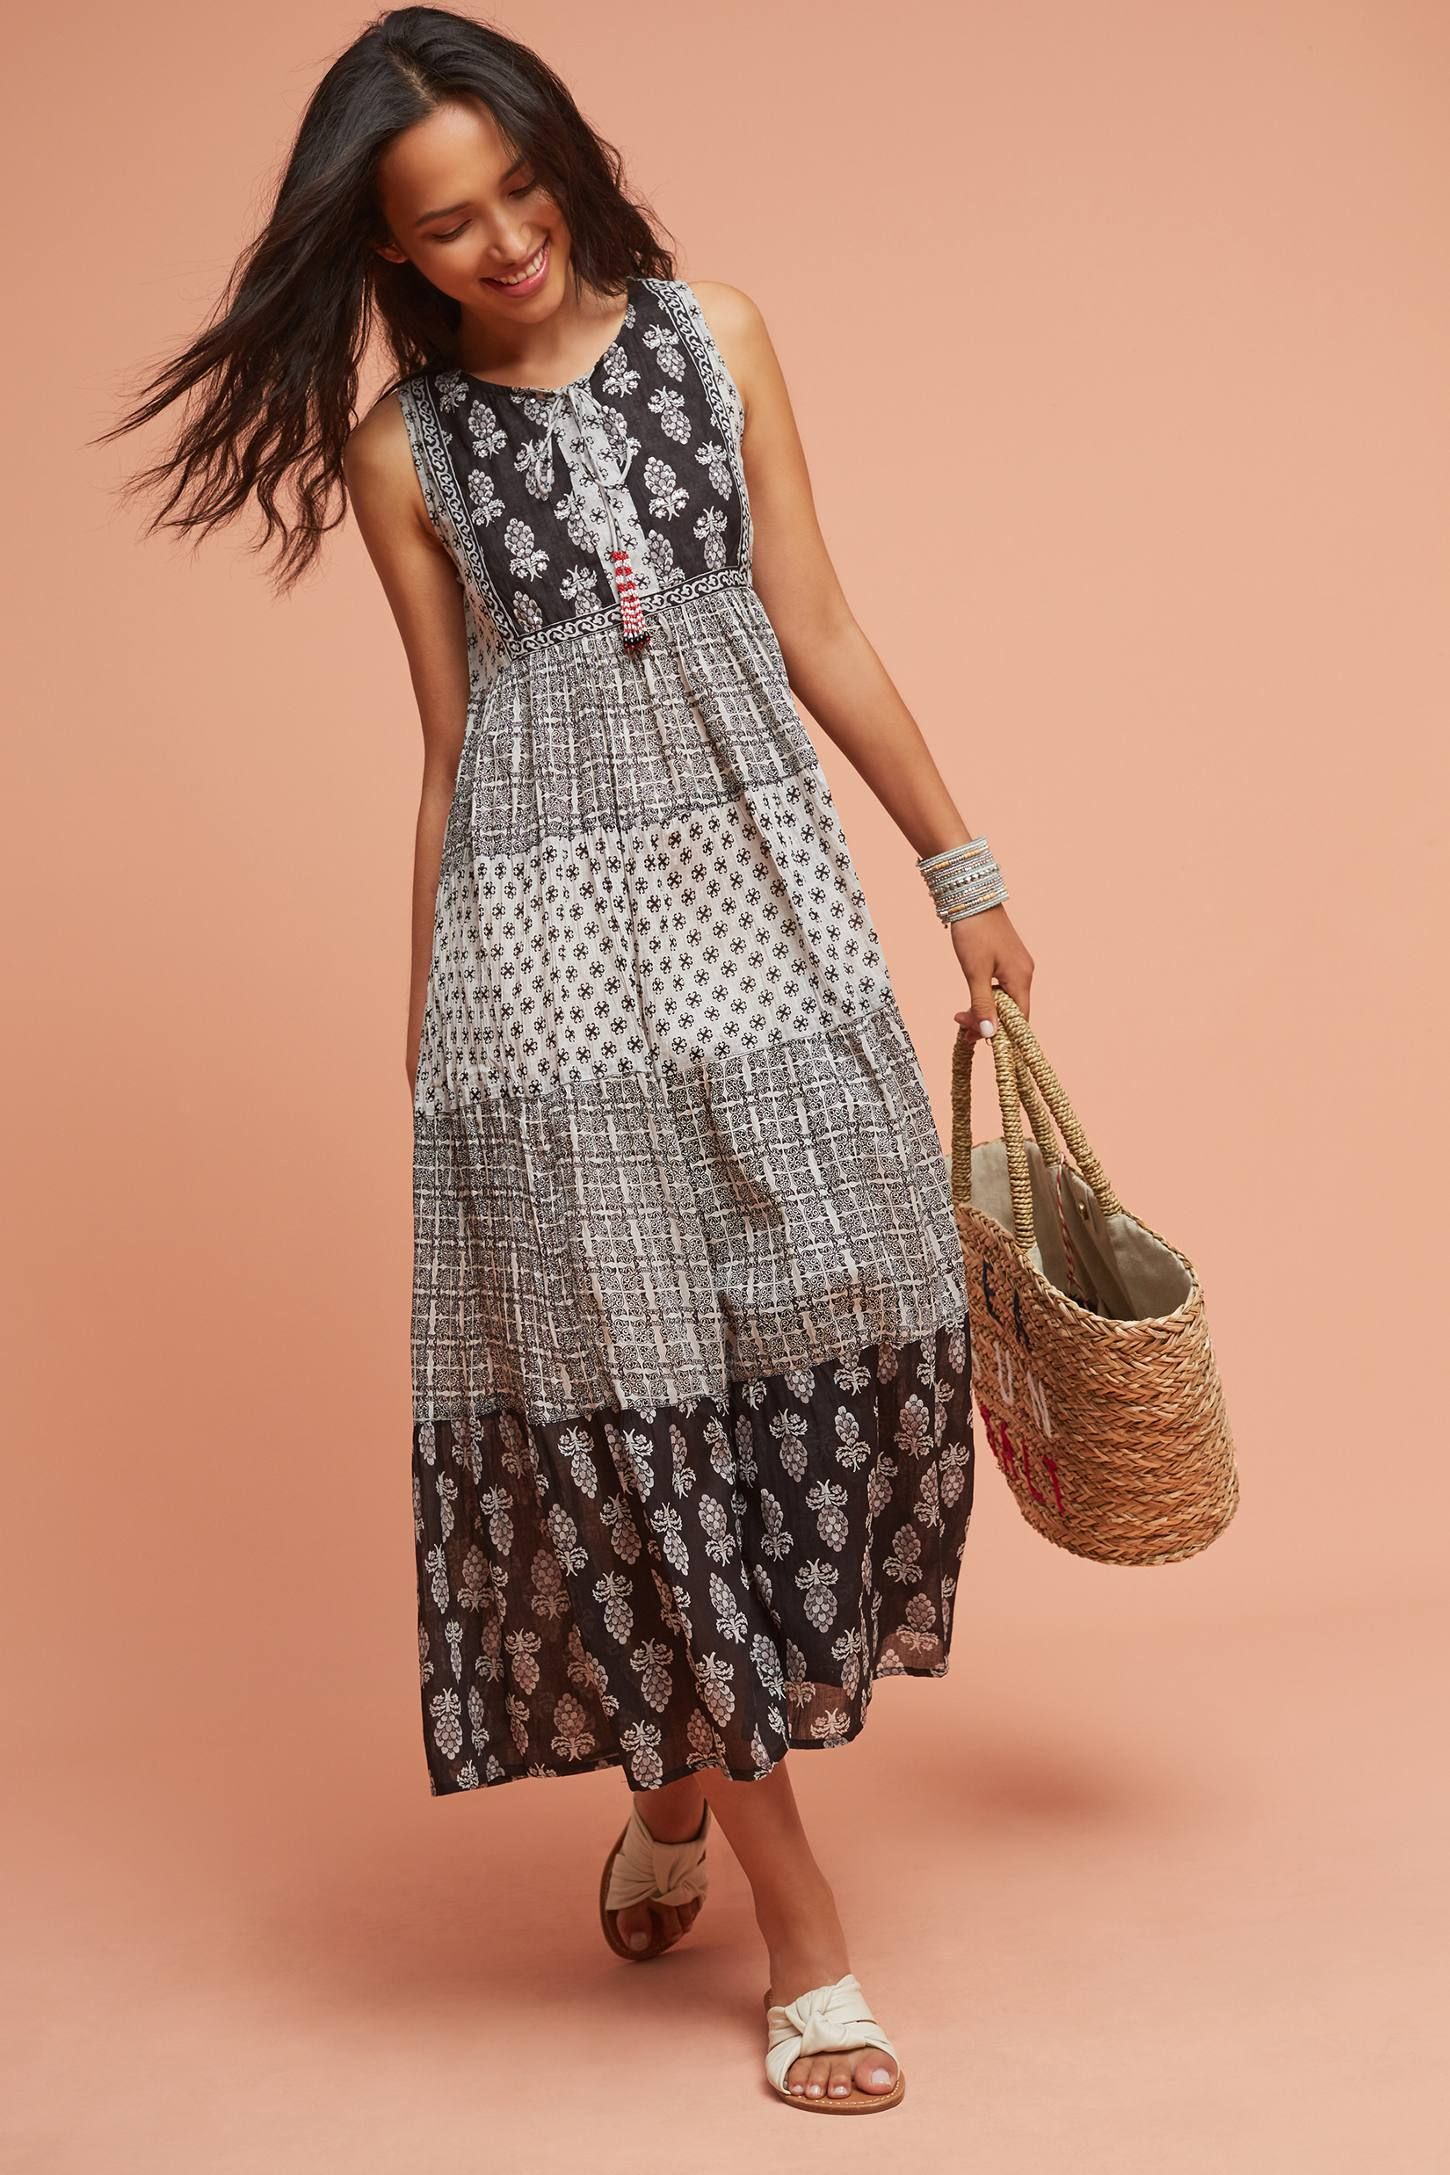 7e6c676dd9073 Shop the Tiered Peasant Dress and more Anthropologie at Anthropologie  today. Read customer reviews, discover product details and more.